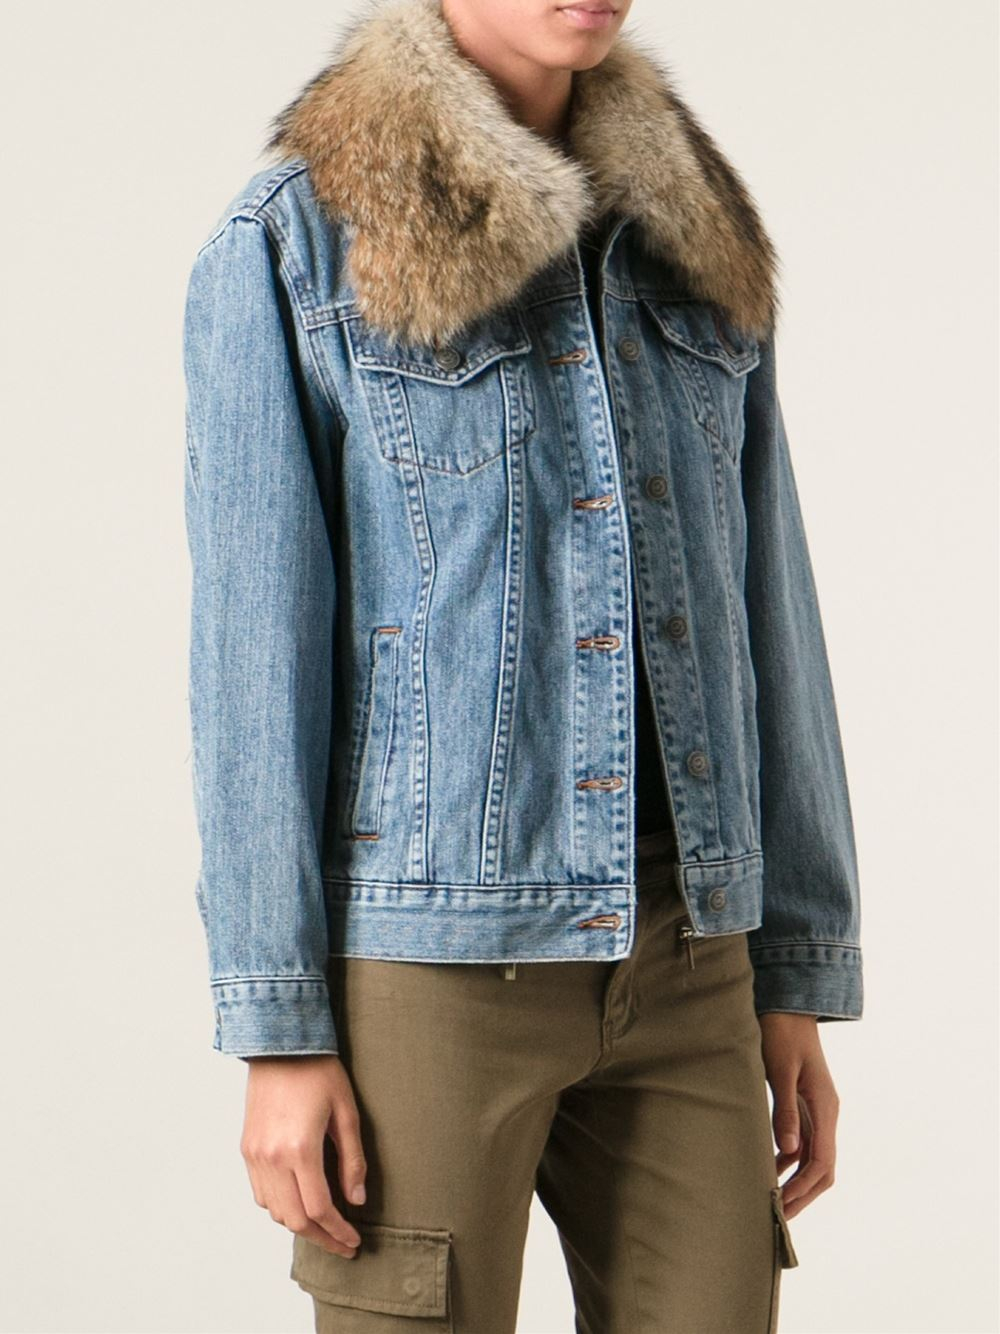 Lyst - Michael michael kors Fur Collar Denim Jacket in Blue